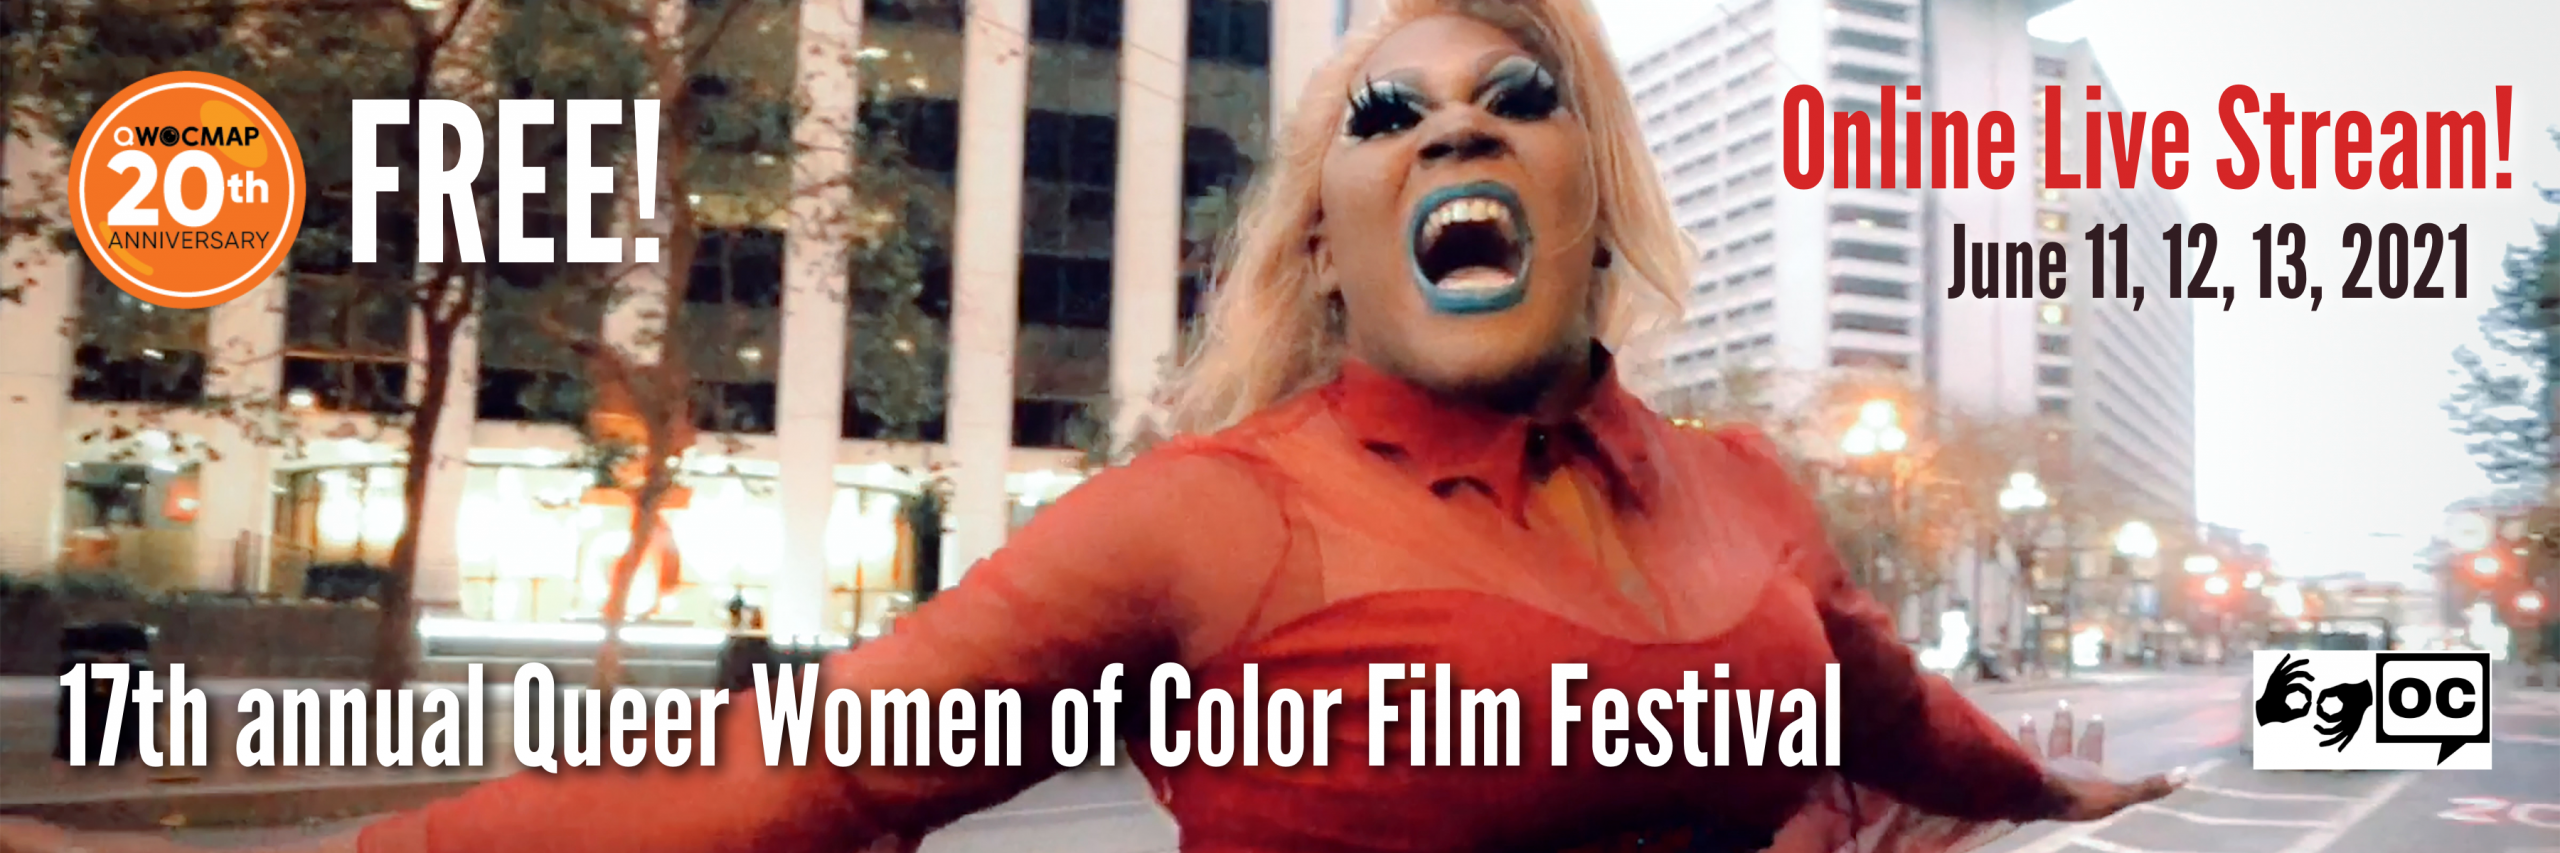 A Black drag queen with dark brown skin and a long blonde wig, singing with her arms wide open in the middle of Market Street in San Francisco. Behind her are skyscrapers, buildings, and streetlights. On the left is the QWOCMAP 20th anniversary logo and white text that reads FREE! 17th annual Queer Women of Color Film Festival. On the right is black and red text that reads Online Live Stream! June 11, 12, 13, 2021. In the bottom right are the accessibility lofos for ASL and open captions.